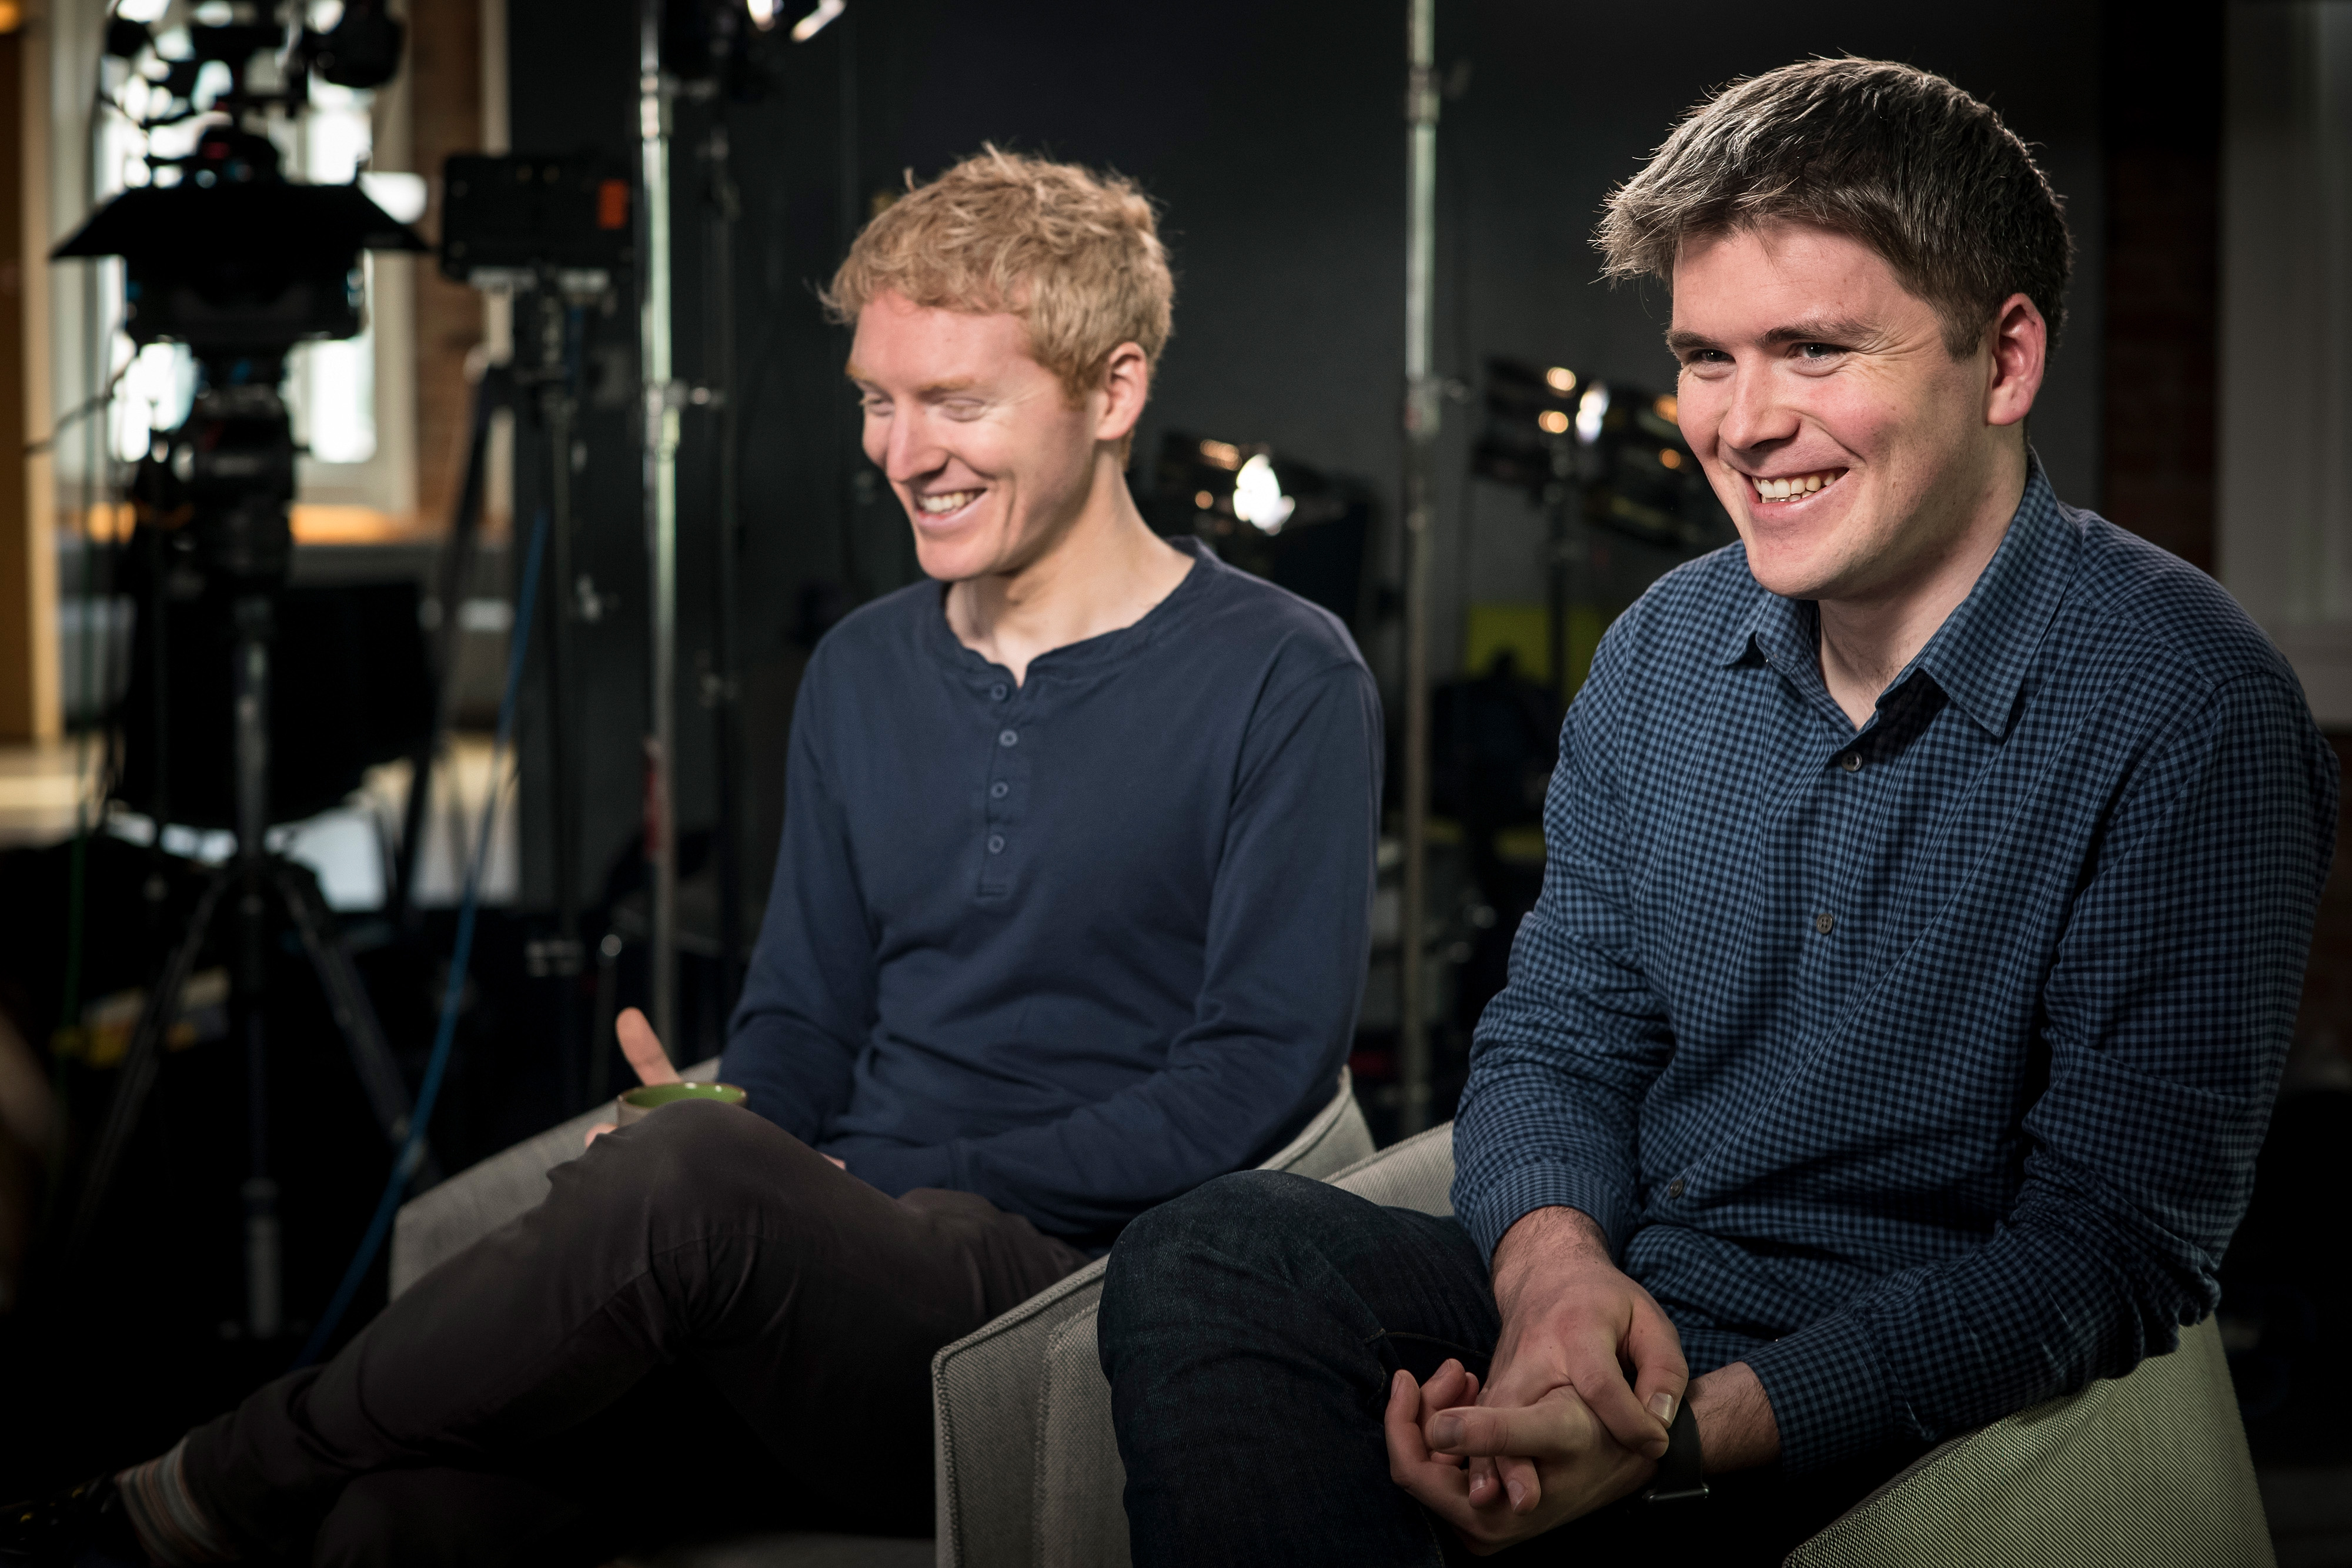 John and Patrick Collison sit next to each other.